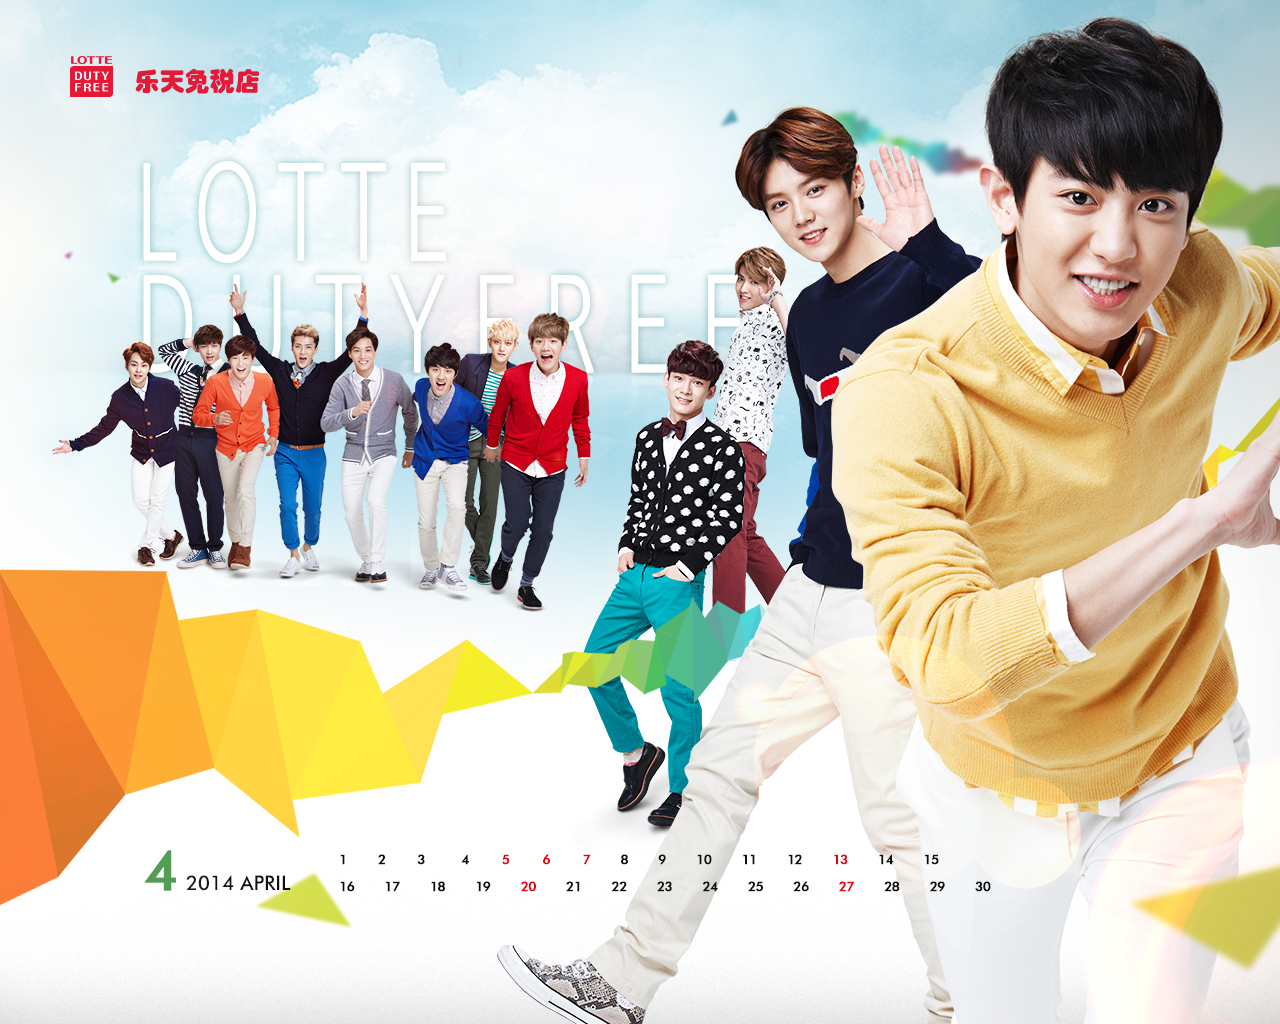 Lotte Duty Free Wallpaper